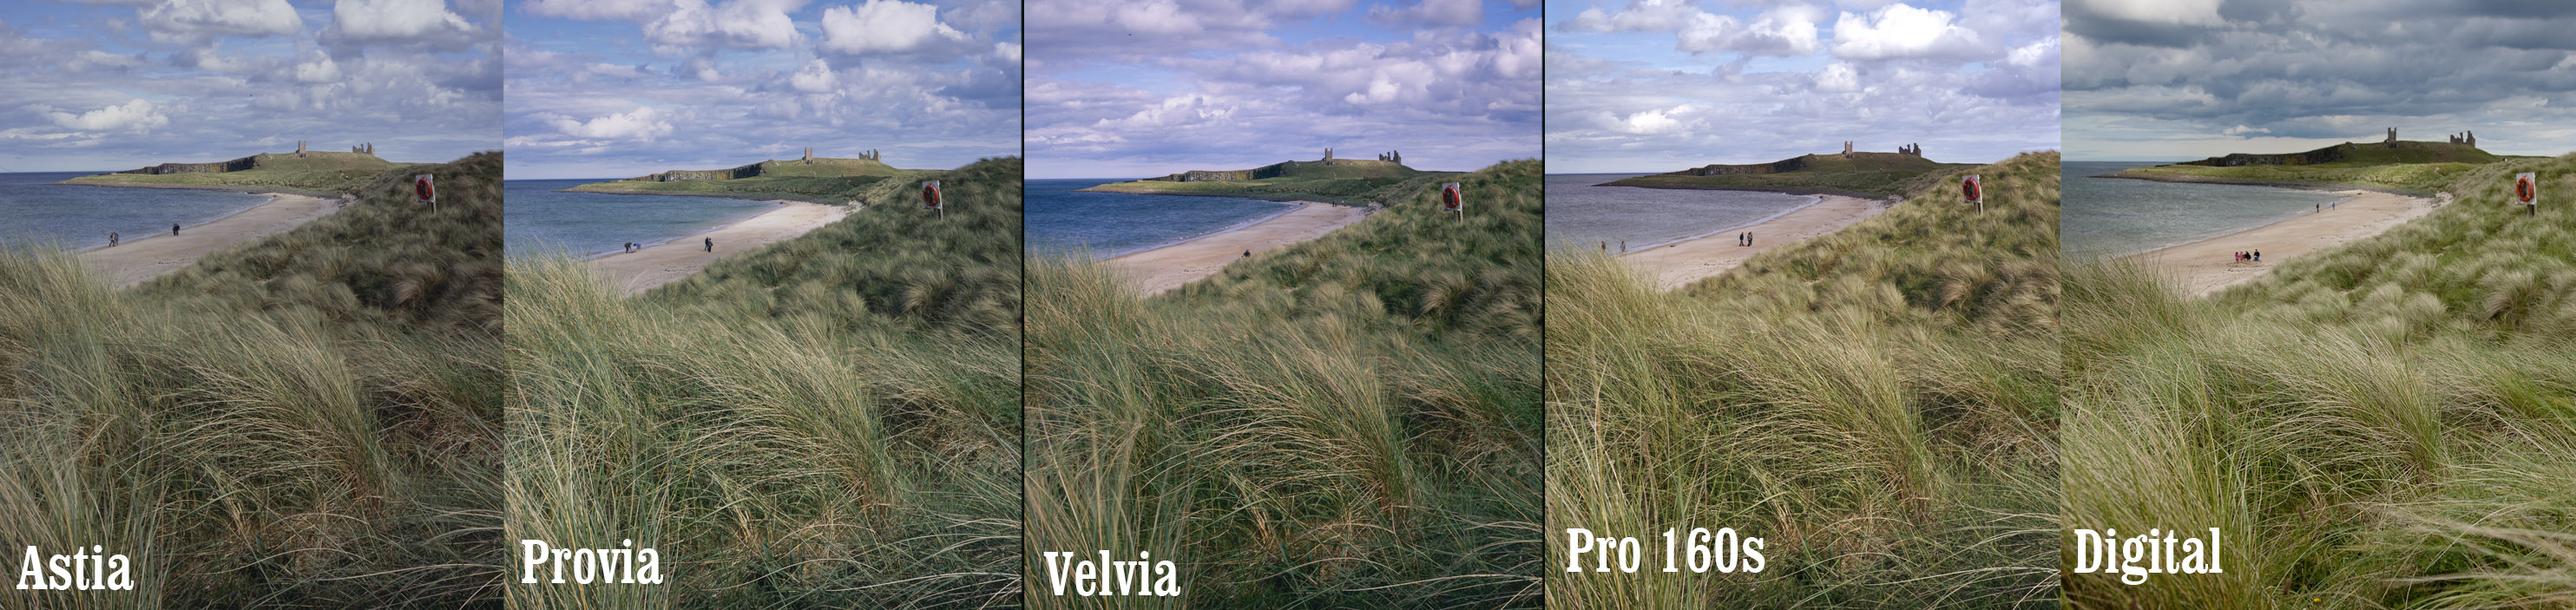 Velvia provia images galleries with a for What is provia